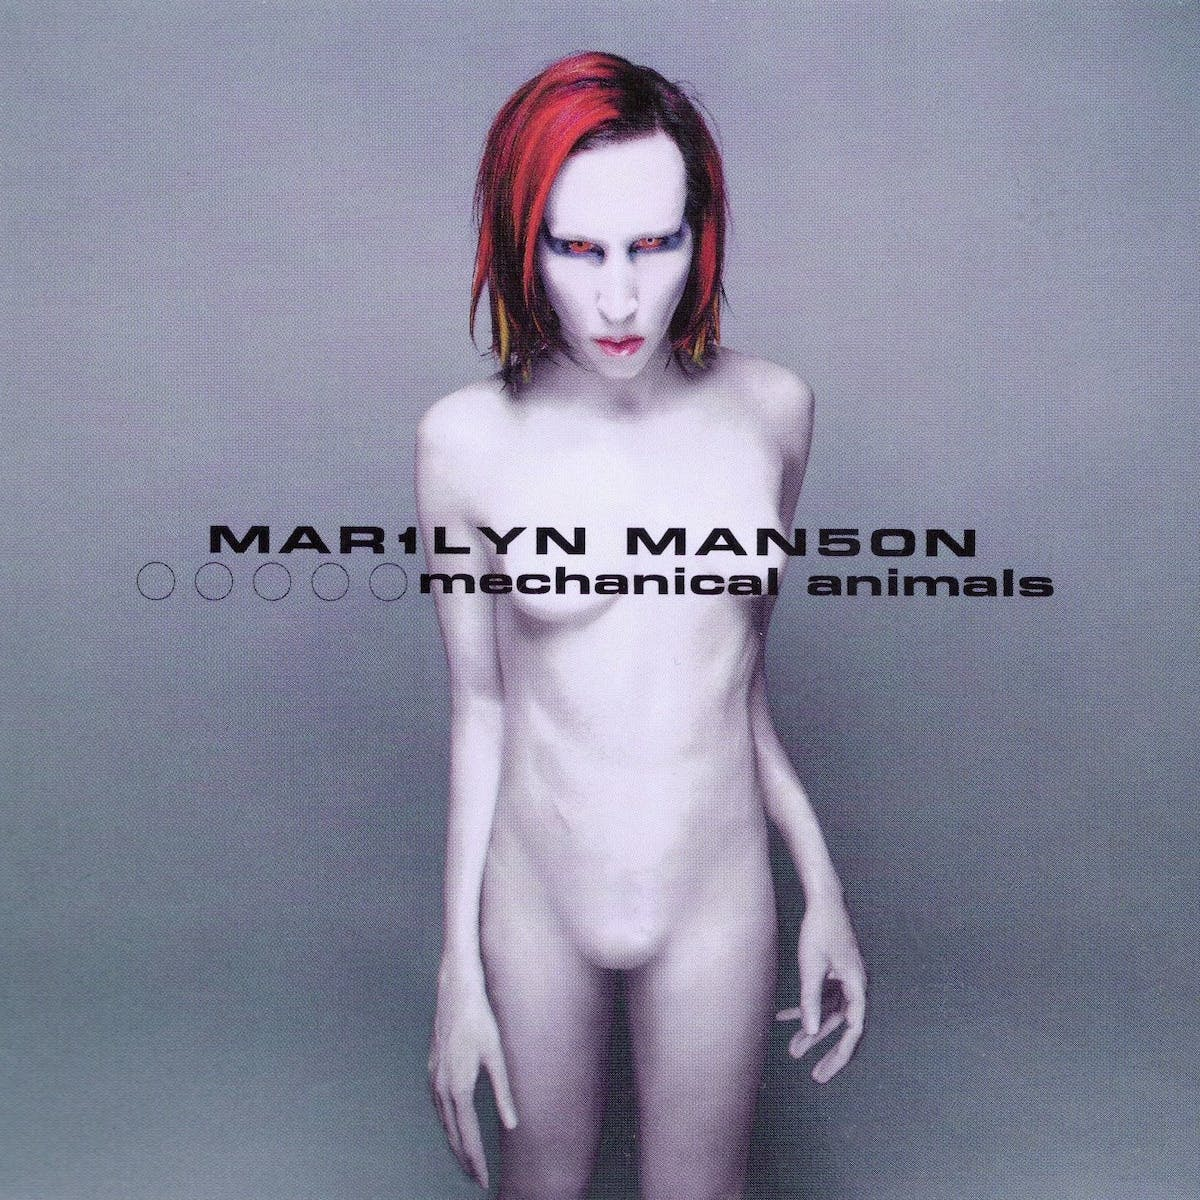 Why Mechanical Animals Made Marilyn Manson Public Enemy Number One